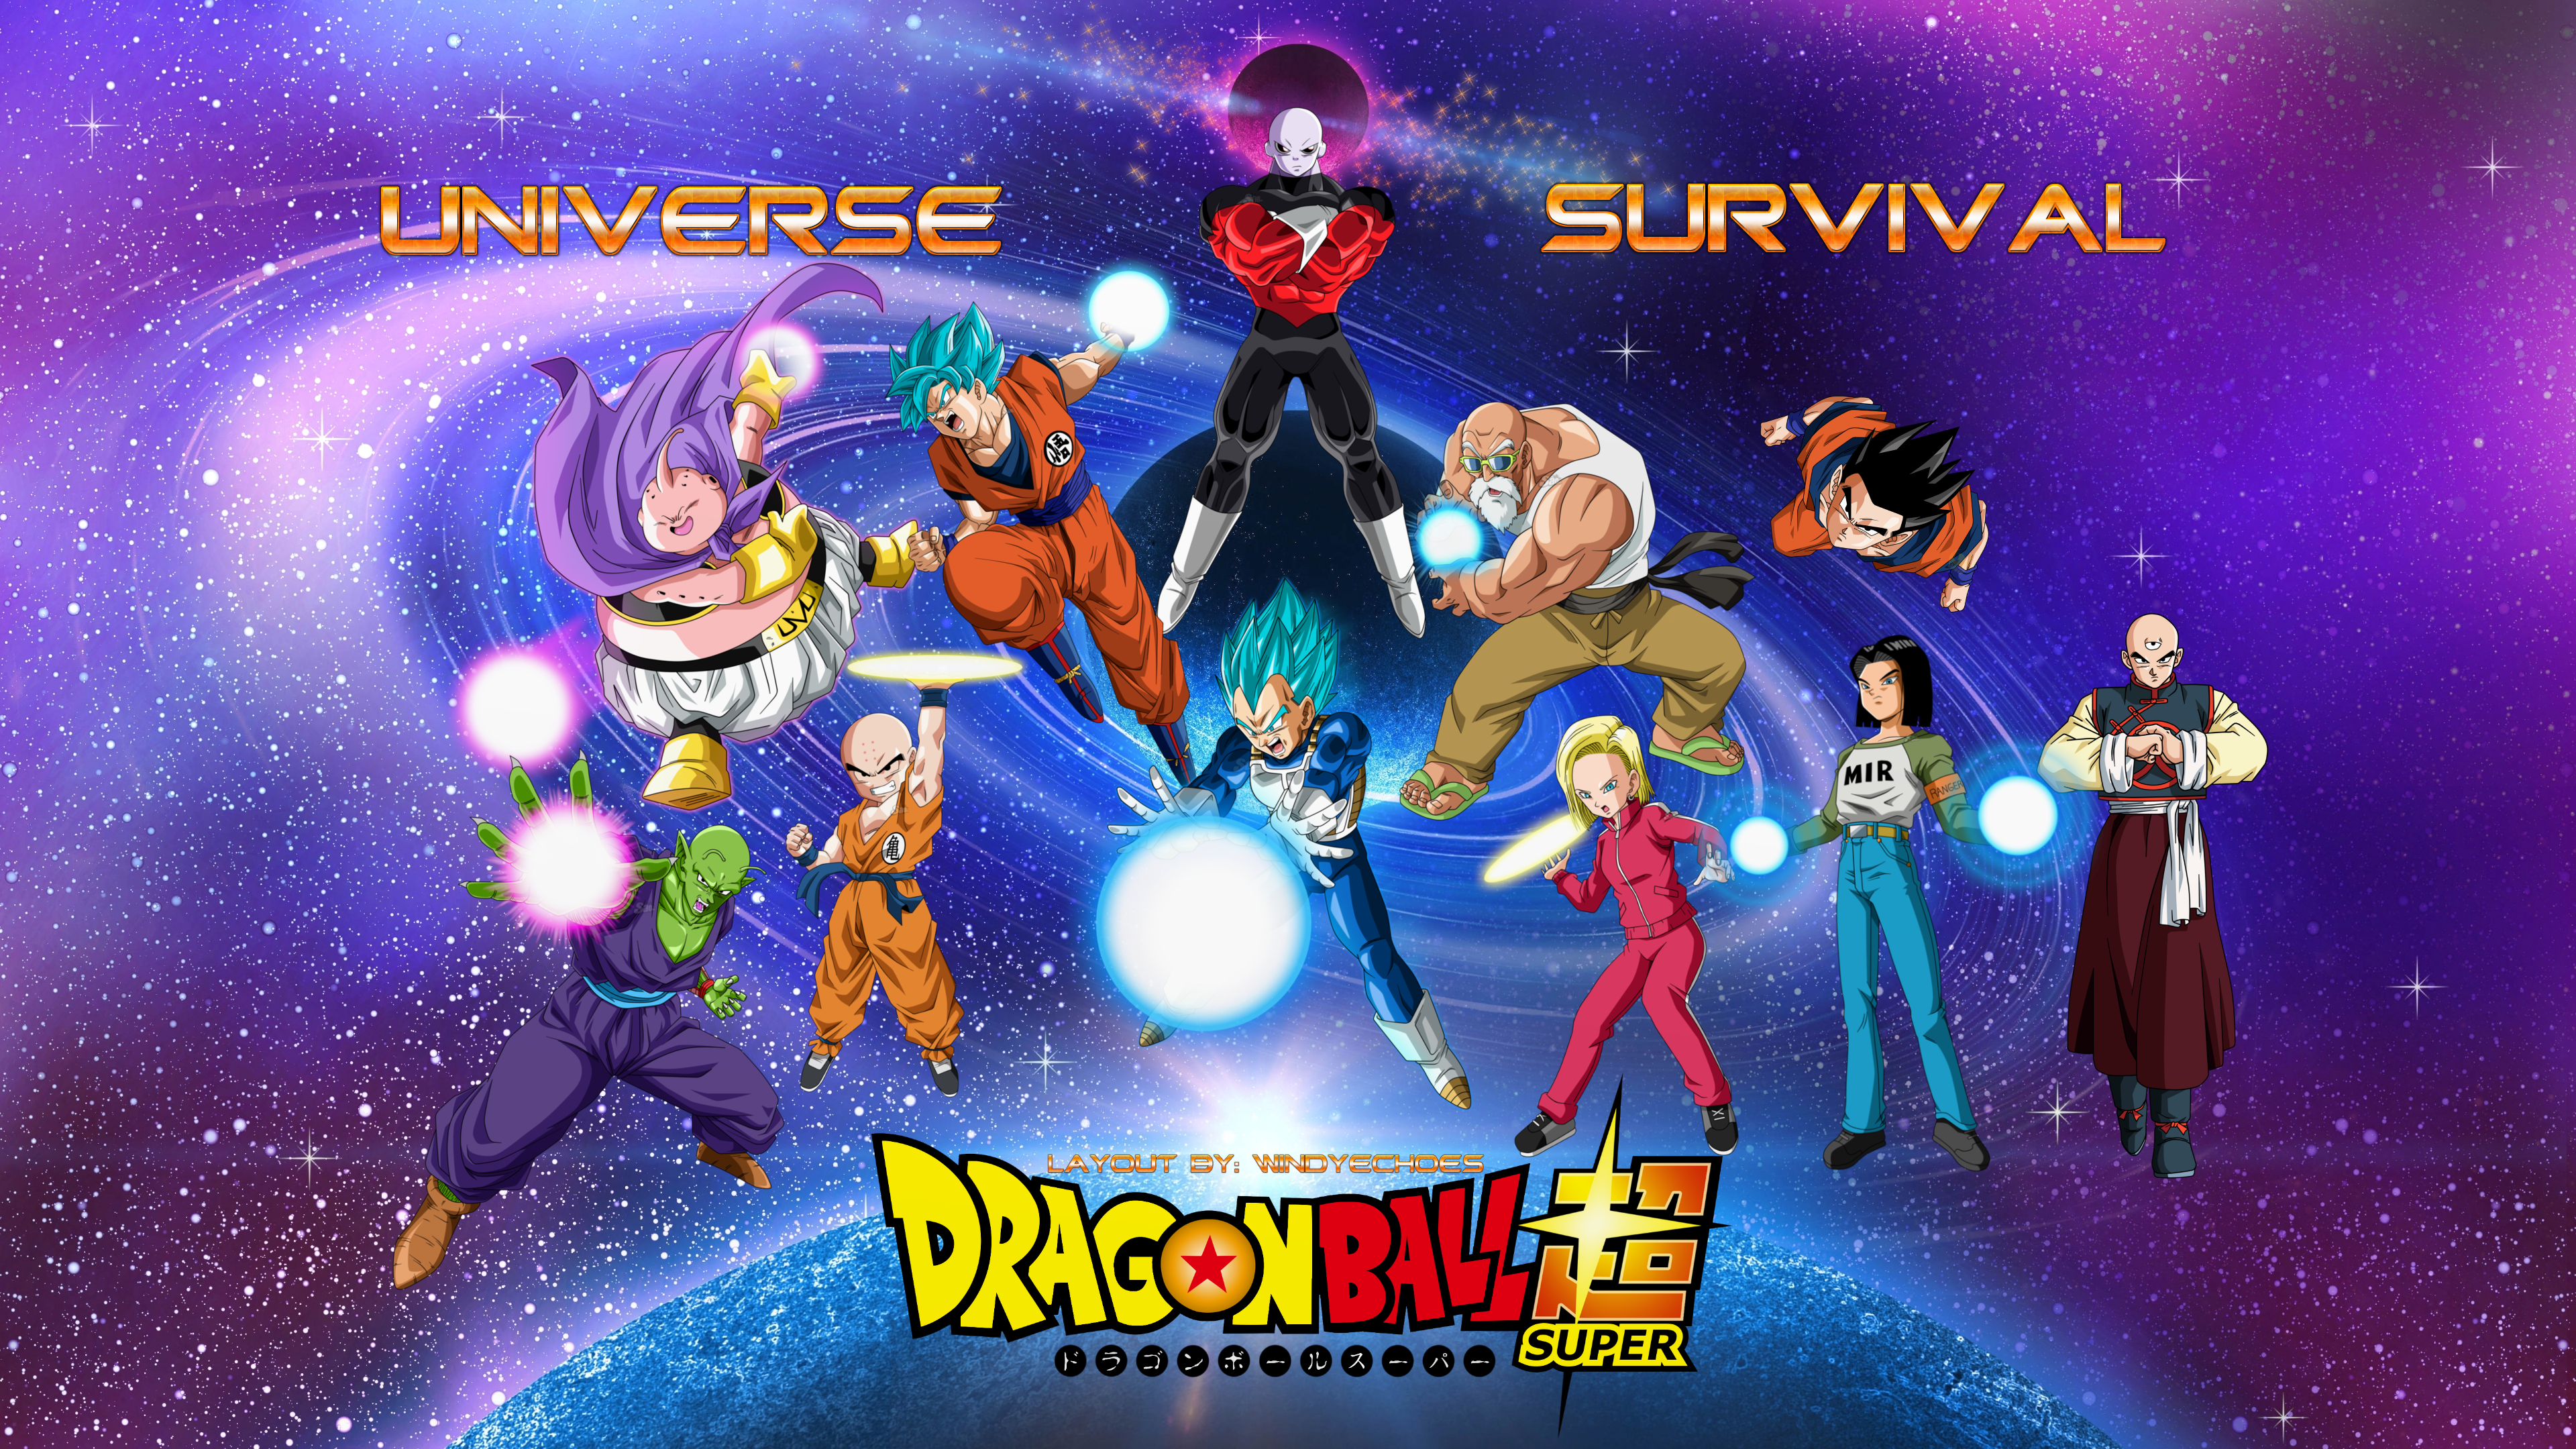 Dragon Ball Super Universe Survival Wallpaper 2 By Windyechoes On